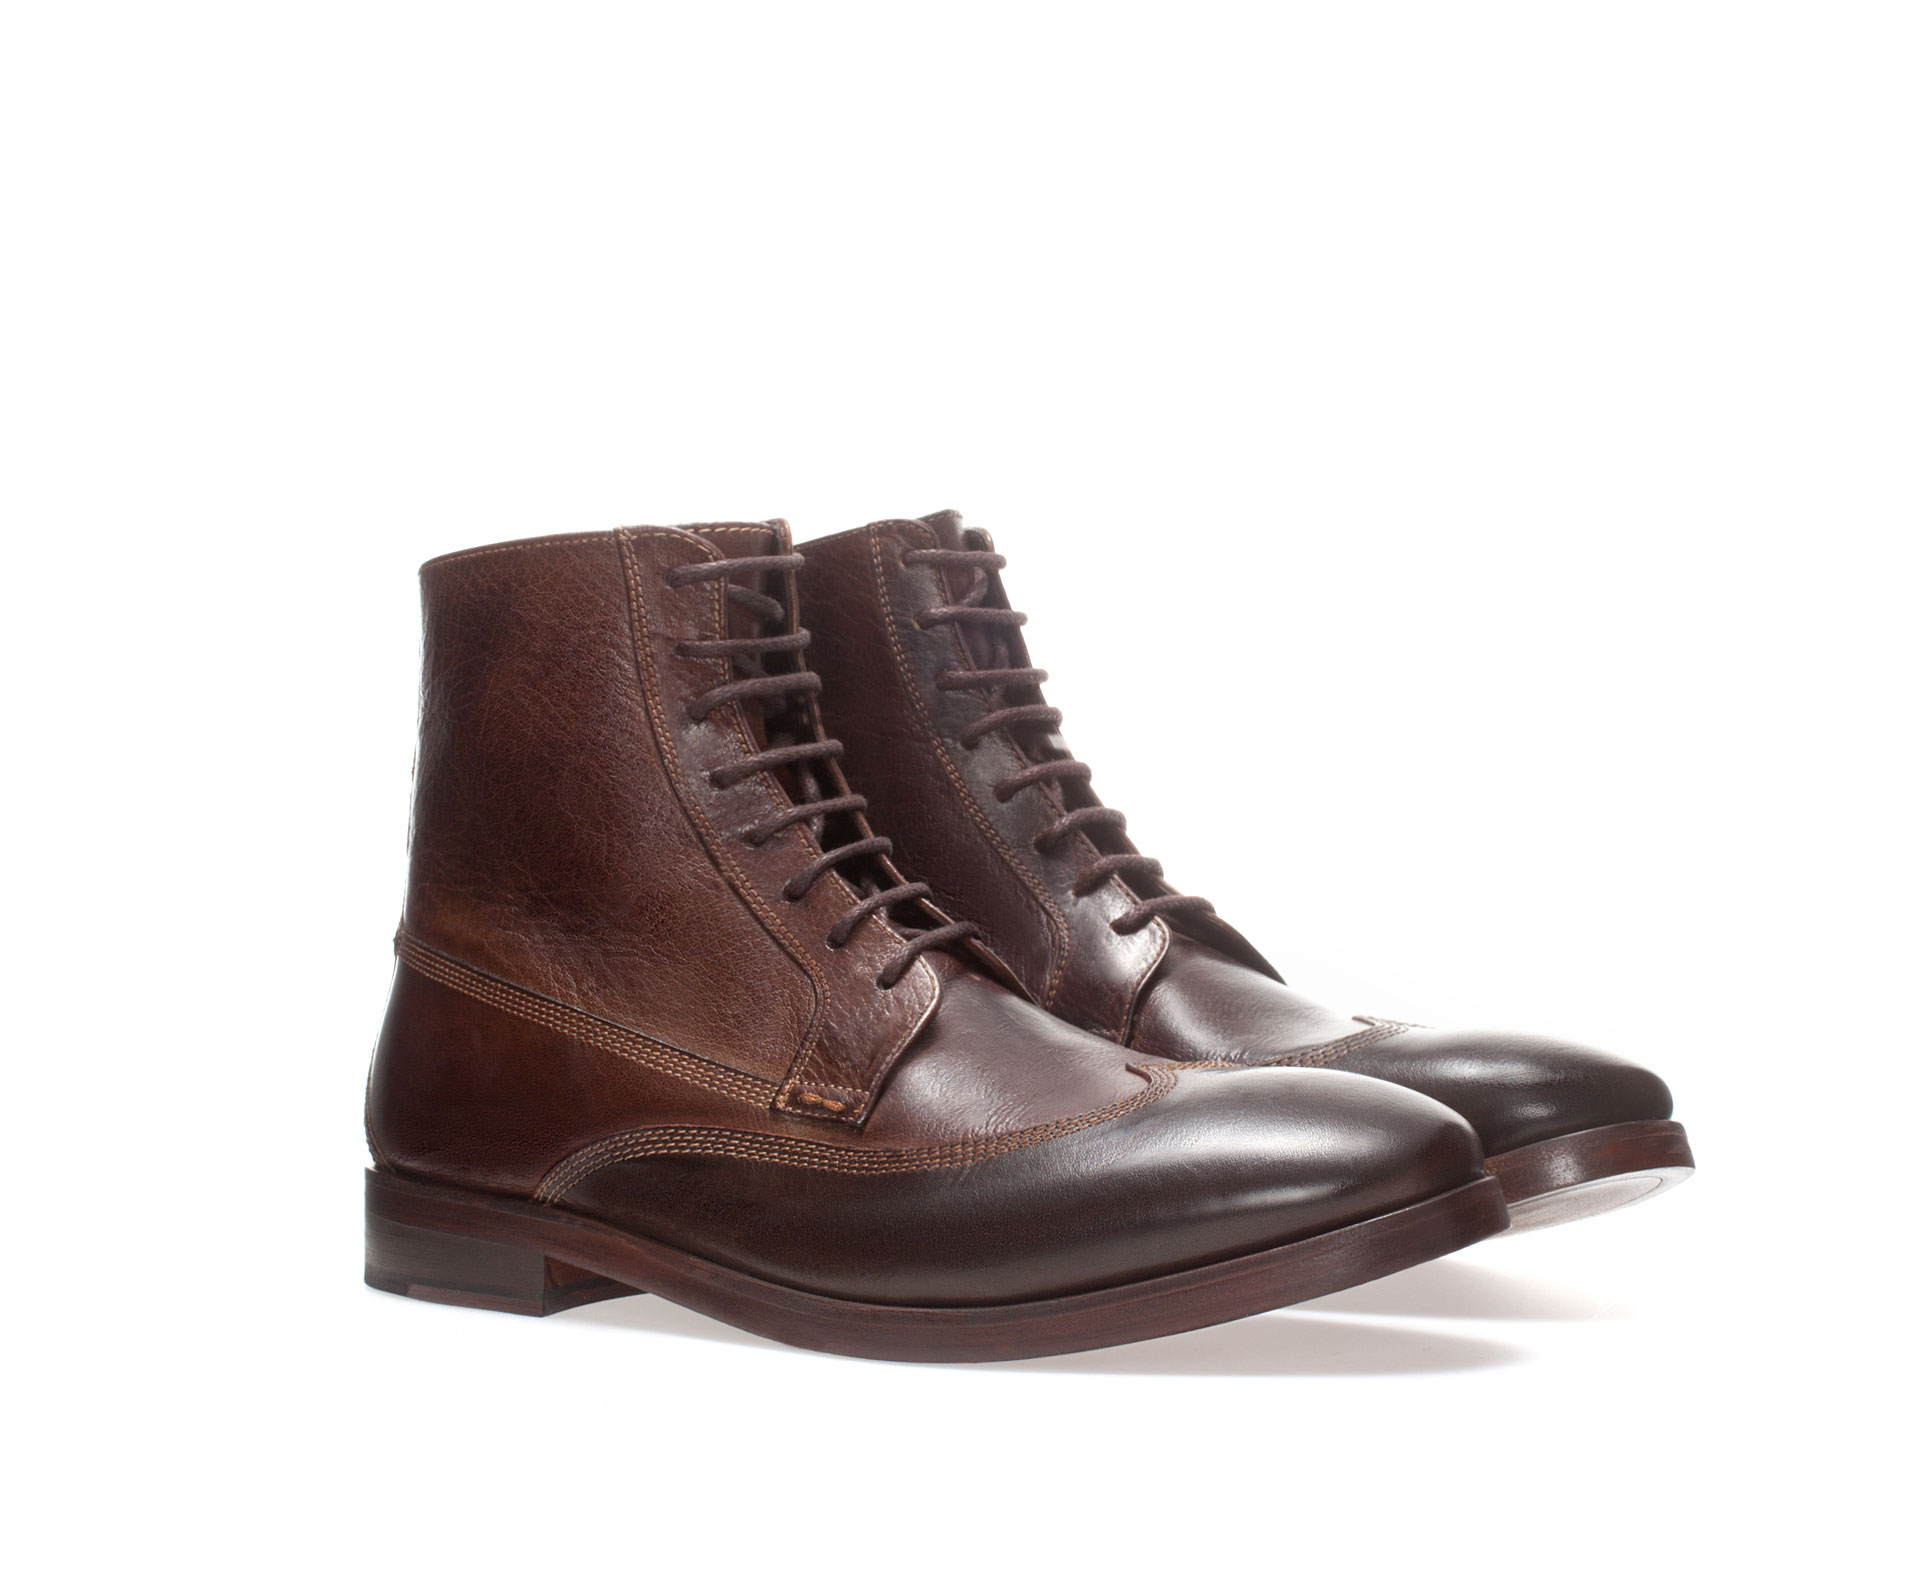 Zara Brushed Boot In Brown For Men Lyst